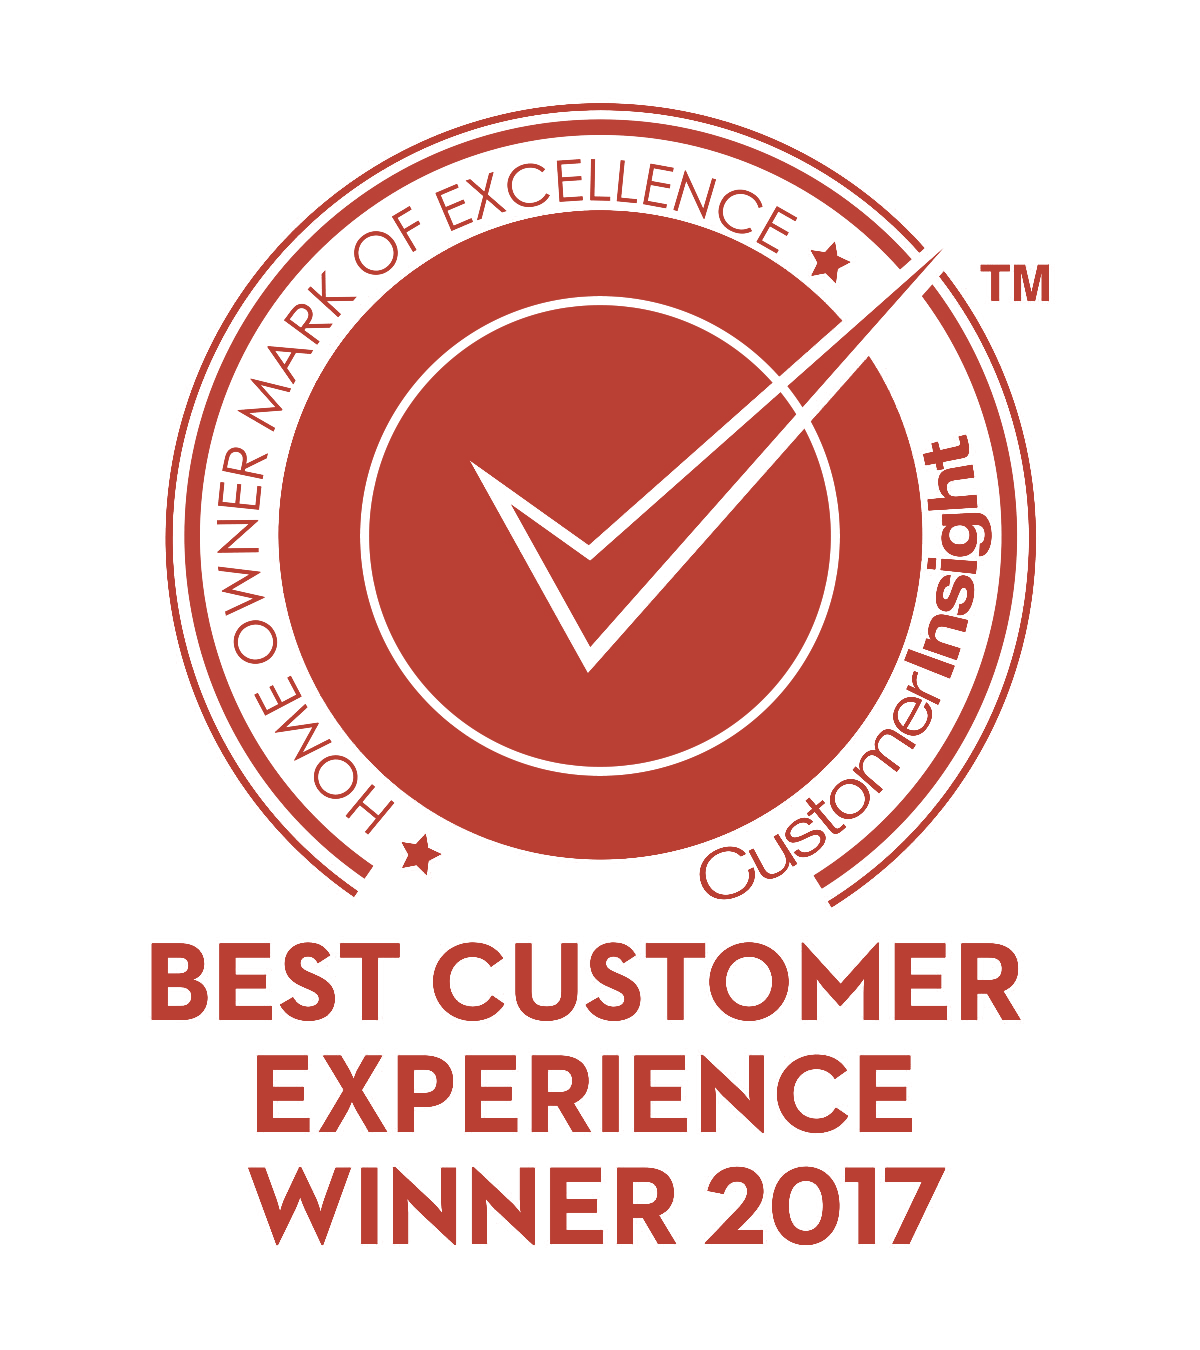 Best Customer Experience Winner 2017 Red